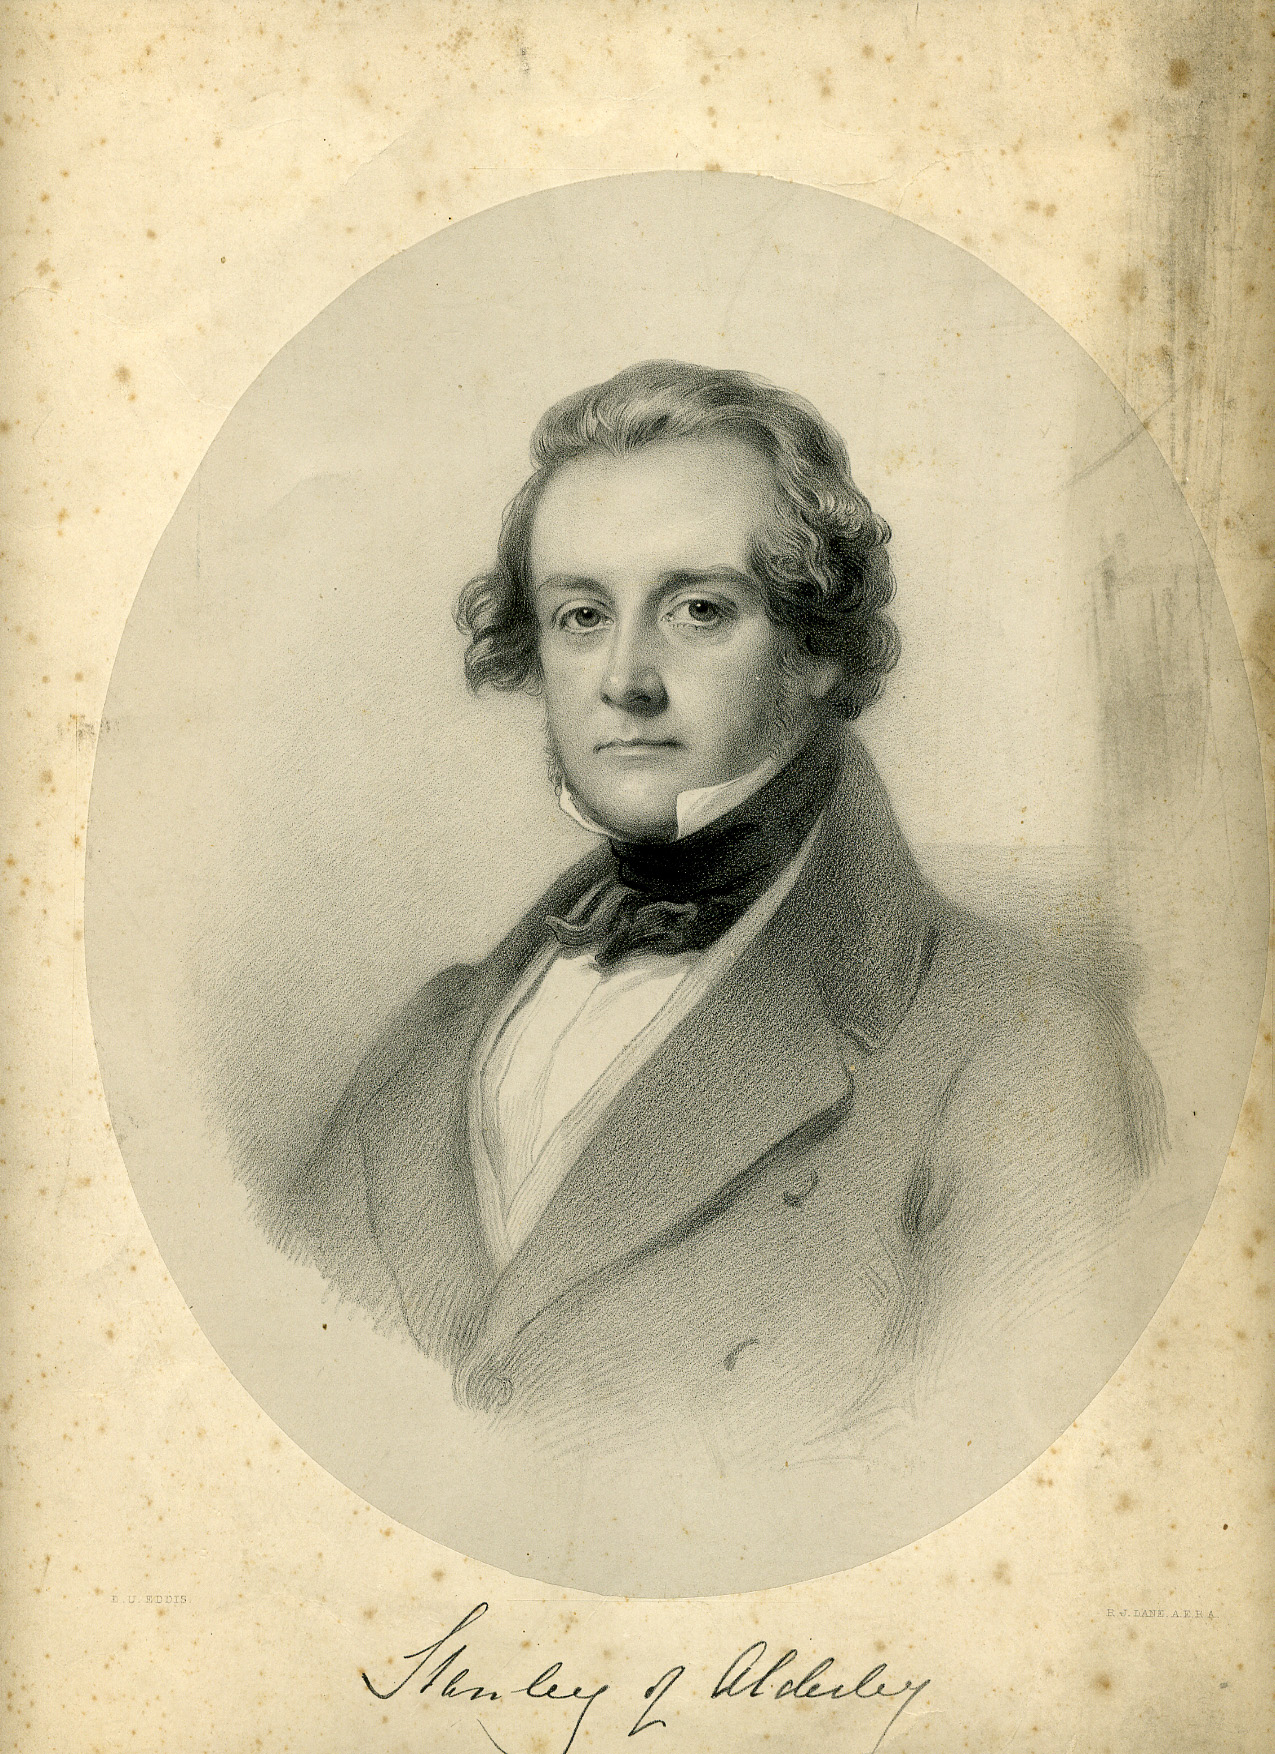 Engraved portrait of Lord Stanley of Alderley